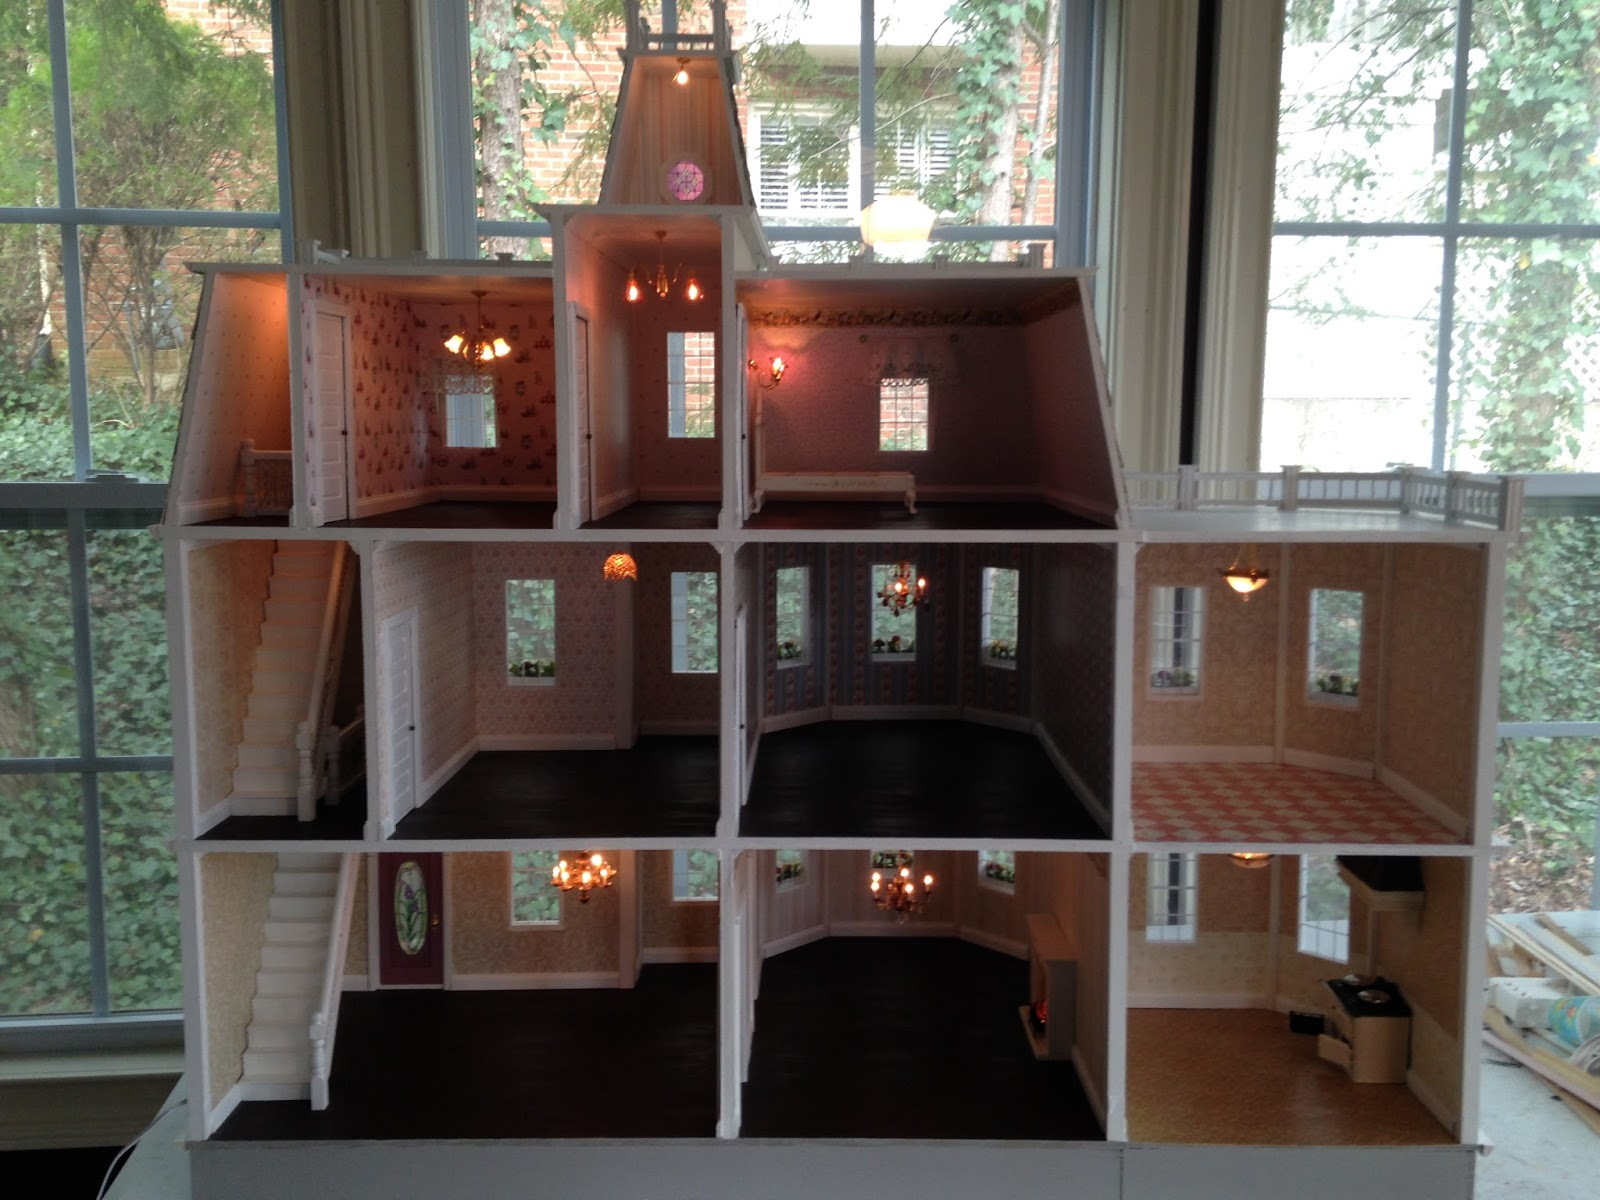 lighting for dollhouses. On The Inside I Installed Lighting And My Package C Finishings With Many More Upgrades. For Dollhouses